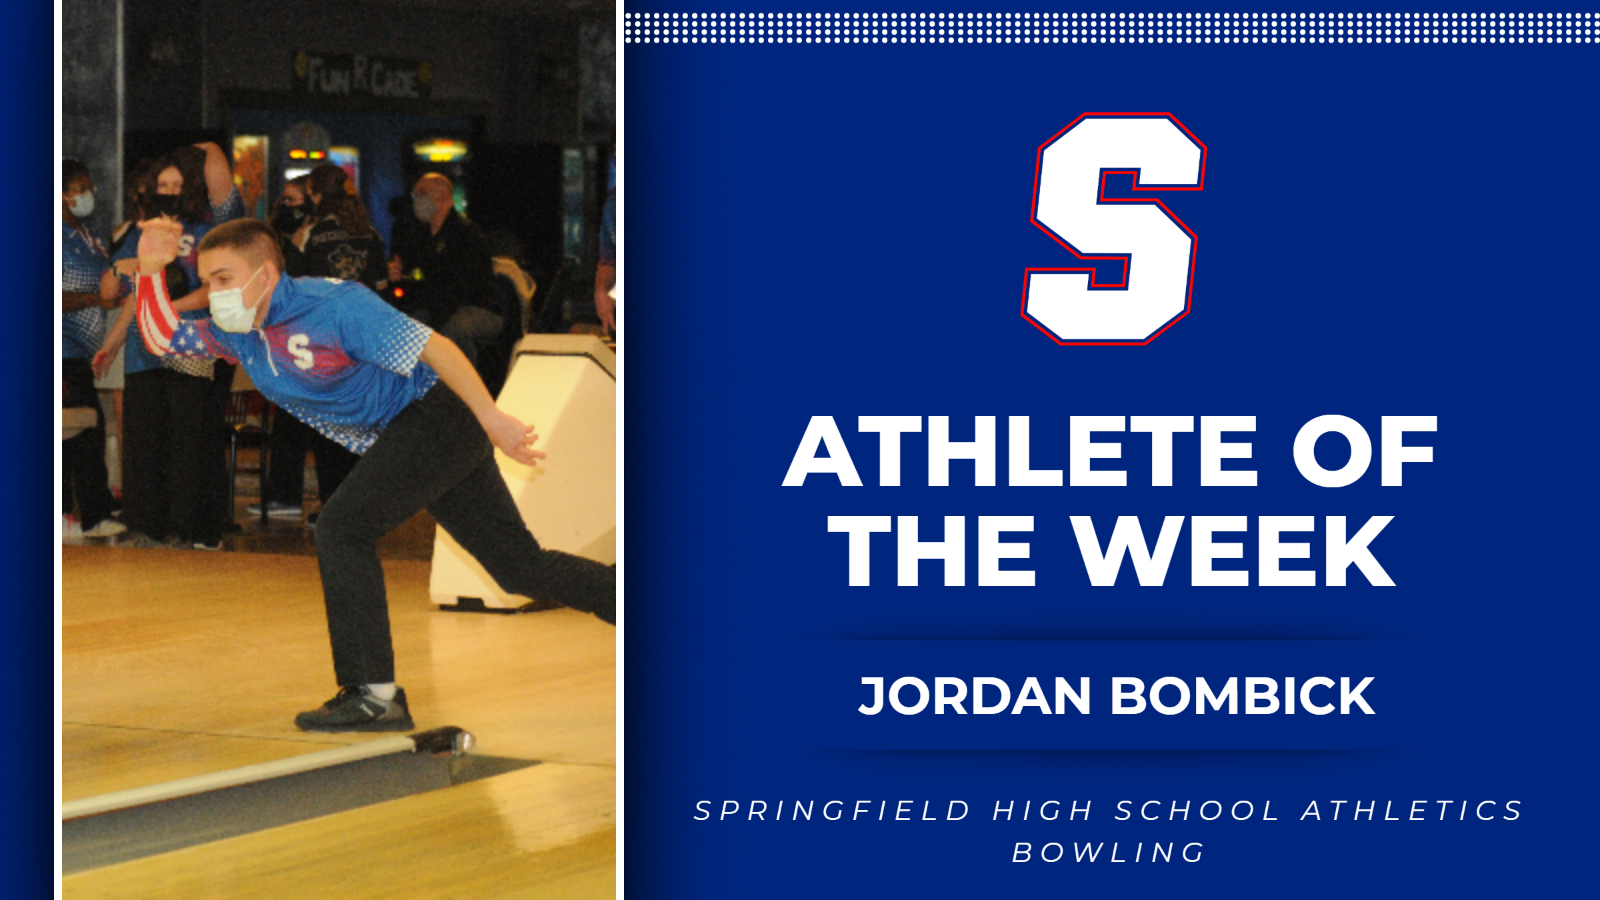 Athlete of the Week: Jordan Bombick